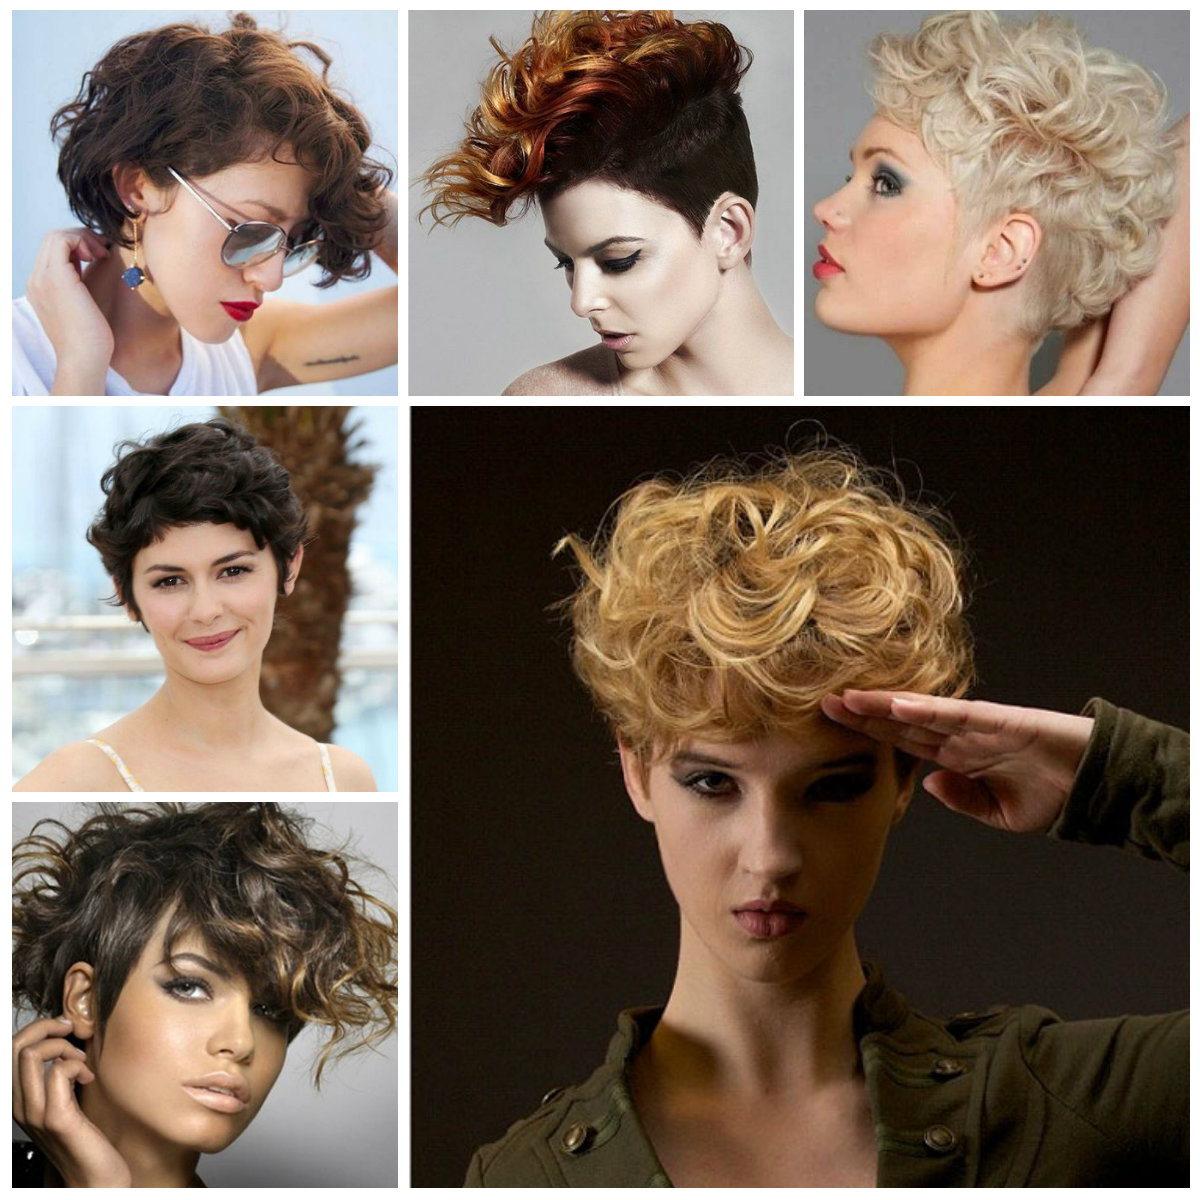 2019 Curly Pixie Haircuts | Hairstyles For Women 2019, Haircuts For Within Long Messy Curly Pixie Haircuts (View 2 of 25)